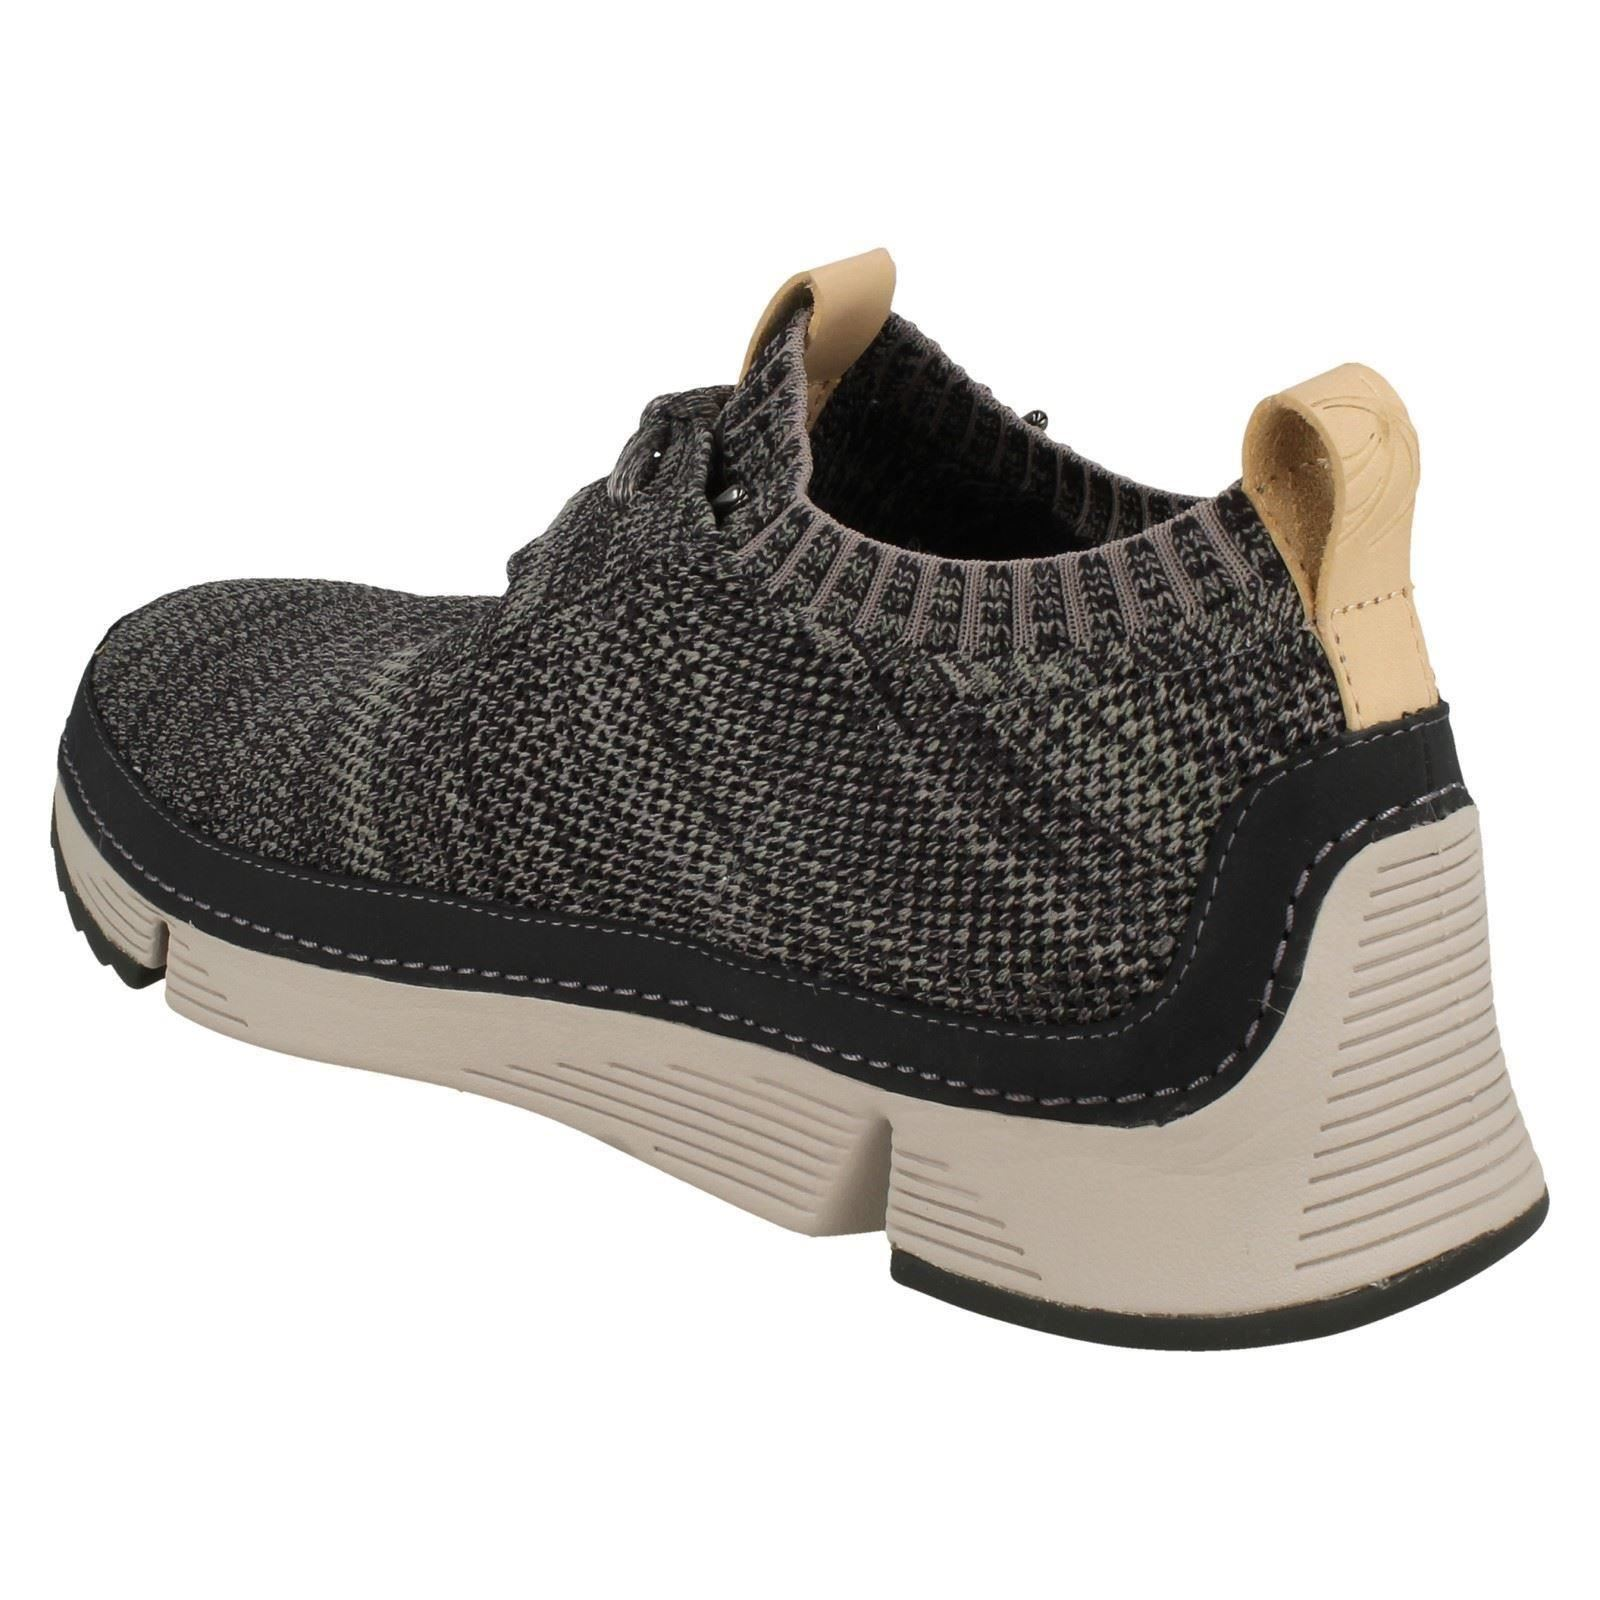 Mens-Clarks-Casual-Lace-Up-Trainers-Tri-Native thumbnail 9